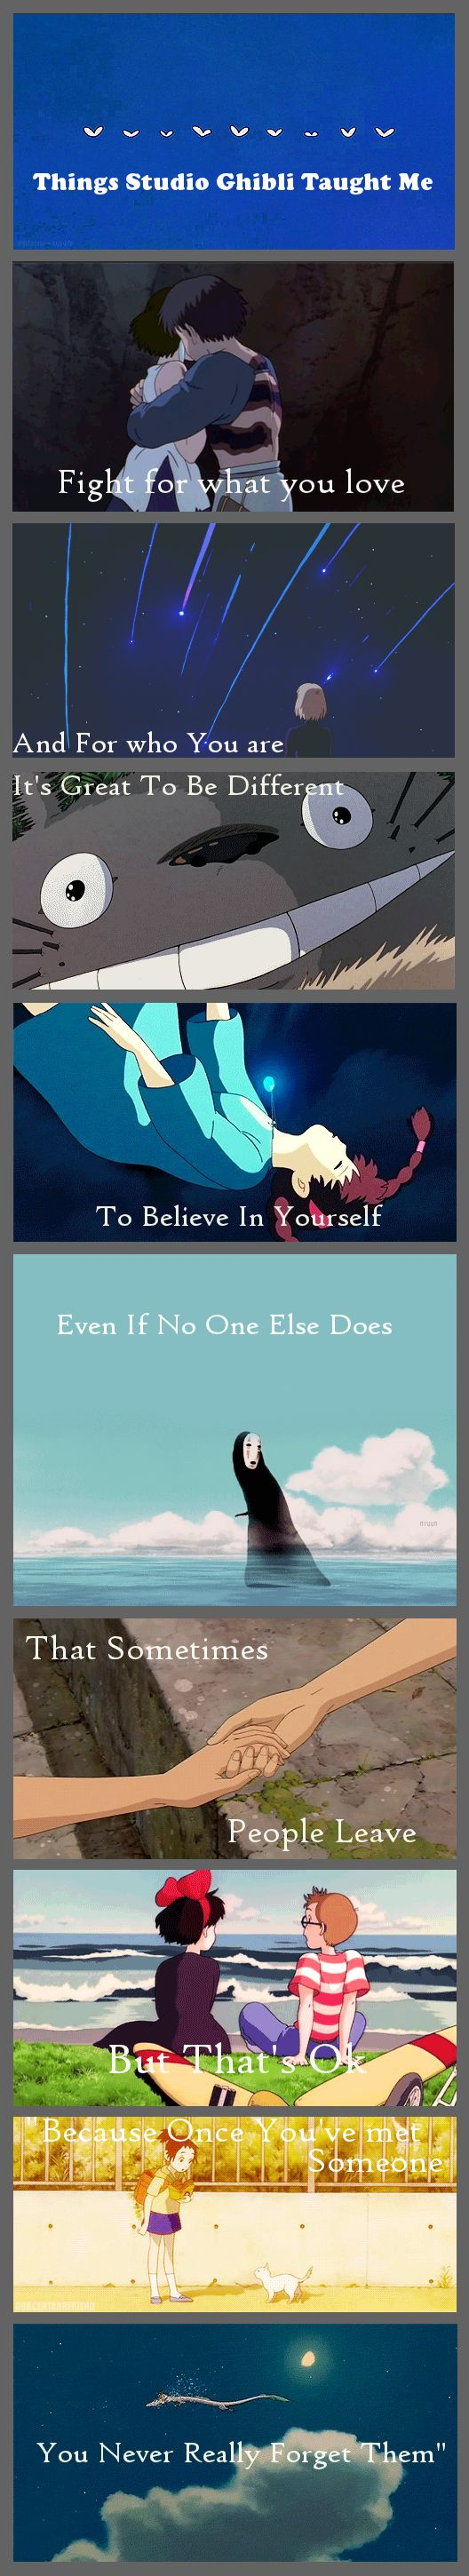 Things Studio Ghibli Taught Me [GIF set] I really needed this today.